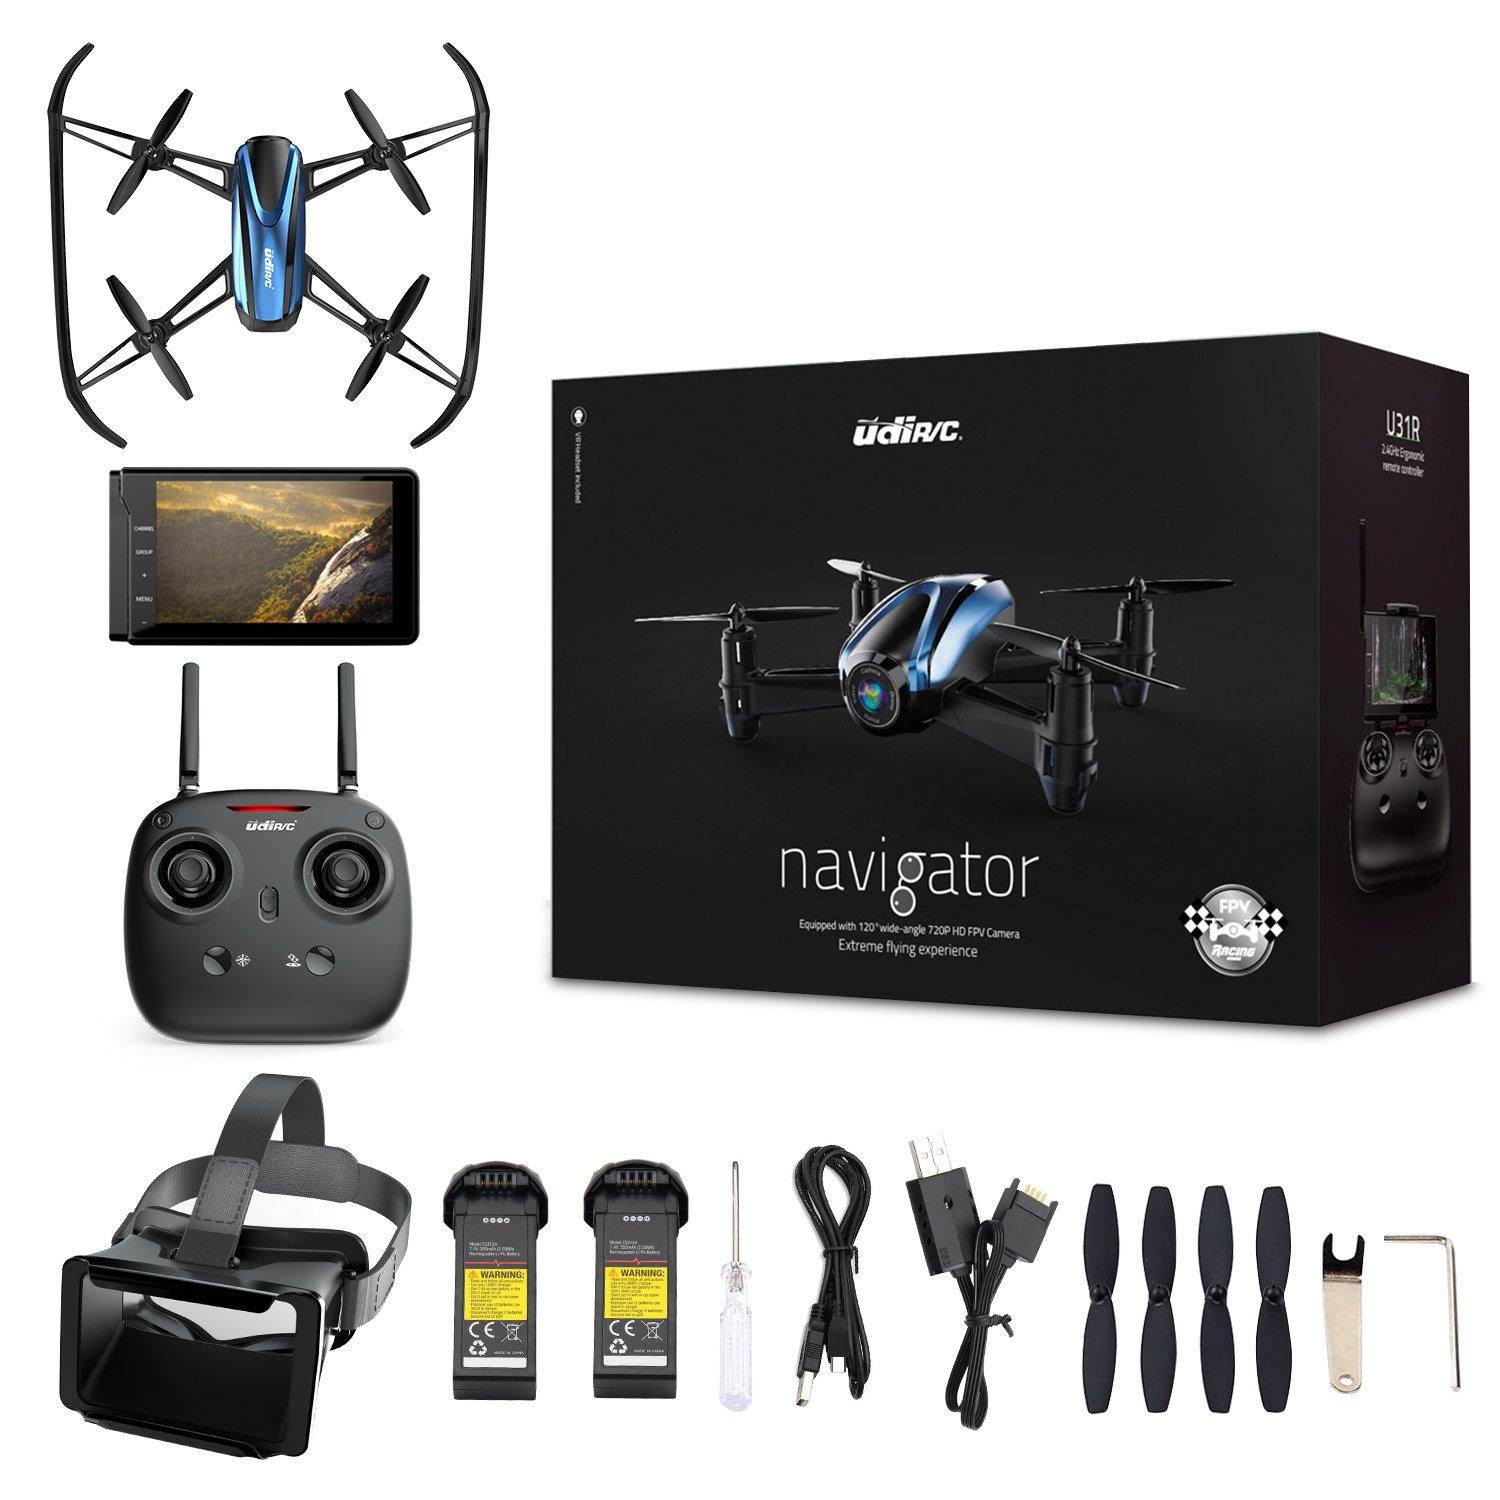 Drone with VR Glasses, Potensic Quadcopter With 720P HD Live Camera RTF 4 Channel 5.8Ghz FPV LCD Screen Monitor 6-Gyro(360 Degree Flip) Headless Mode & Altitude Hold Function by Potensic